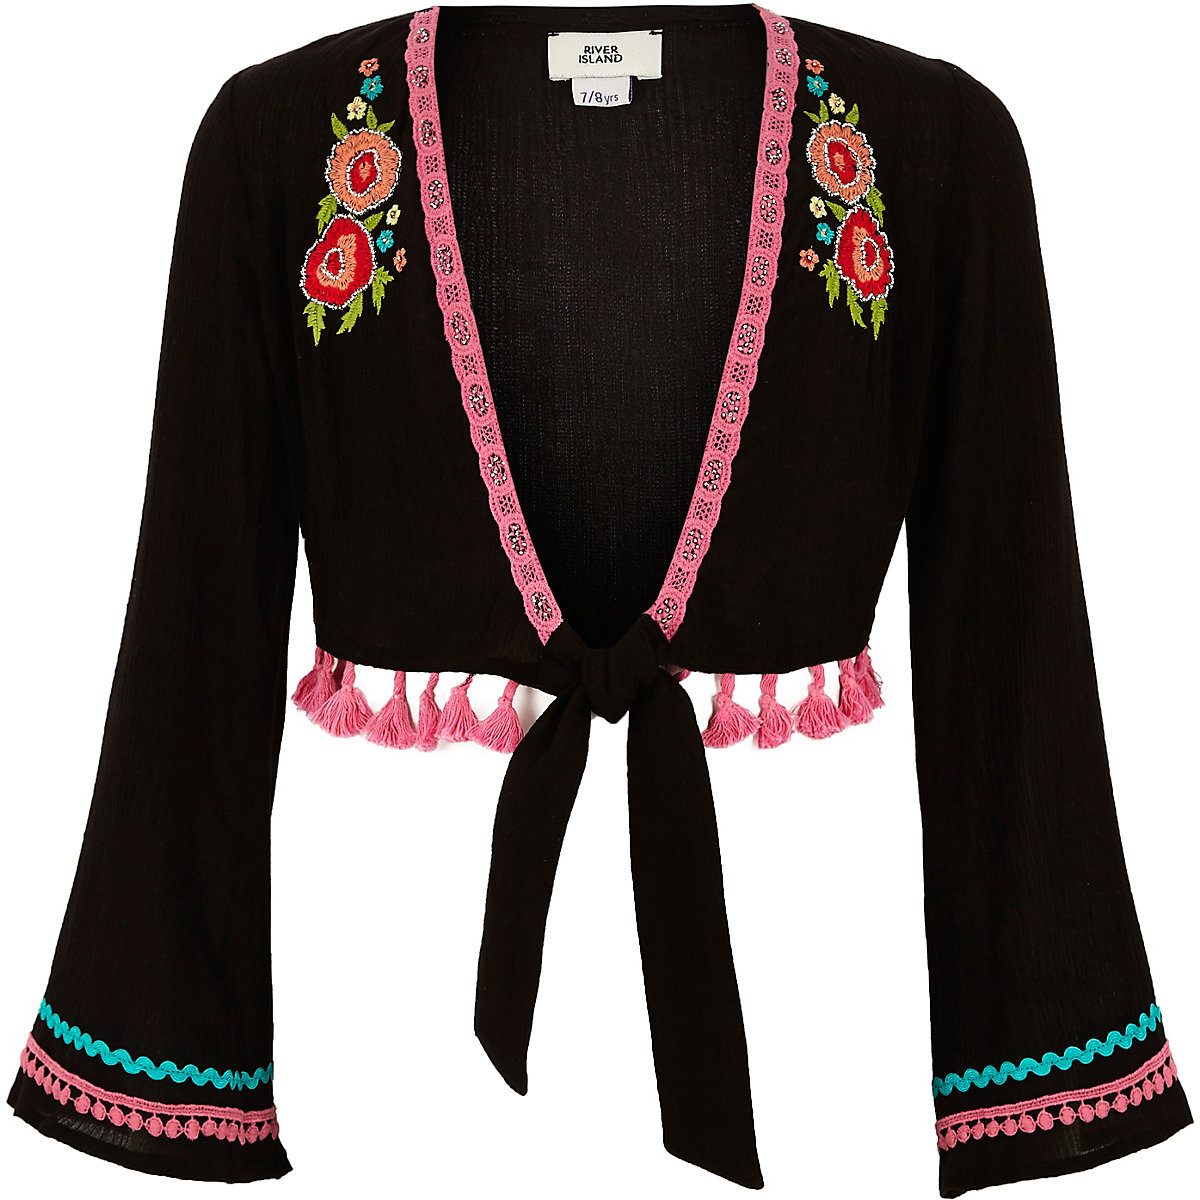 Girls black floral embroidered cover up